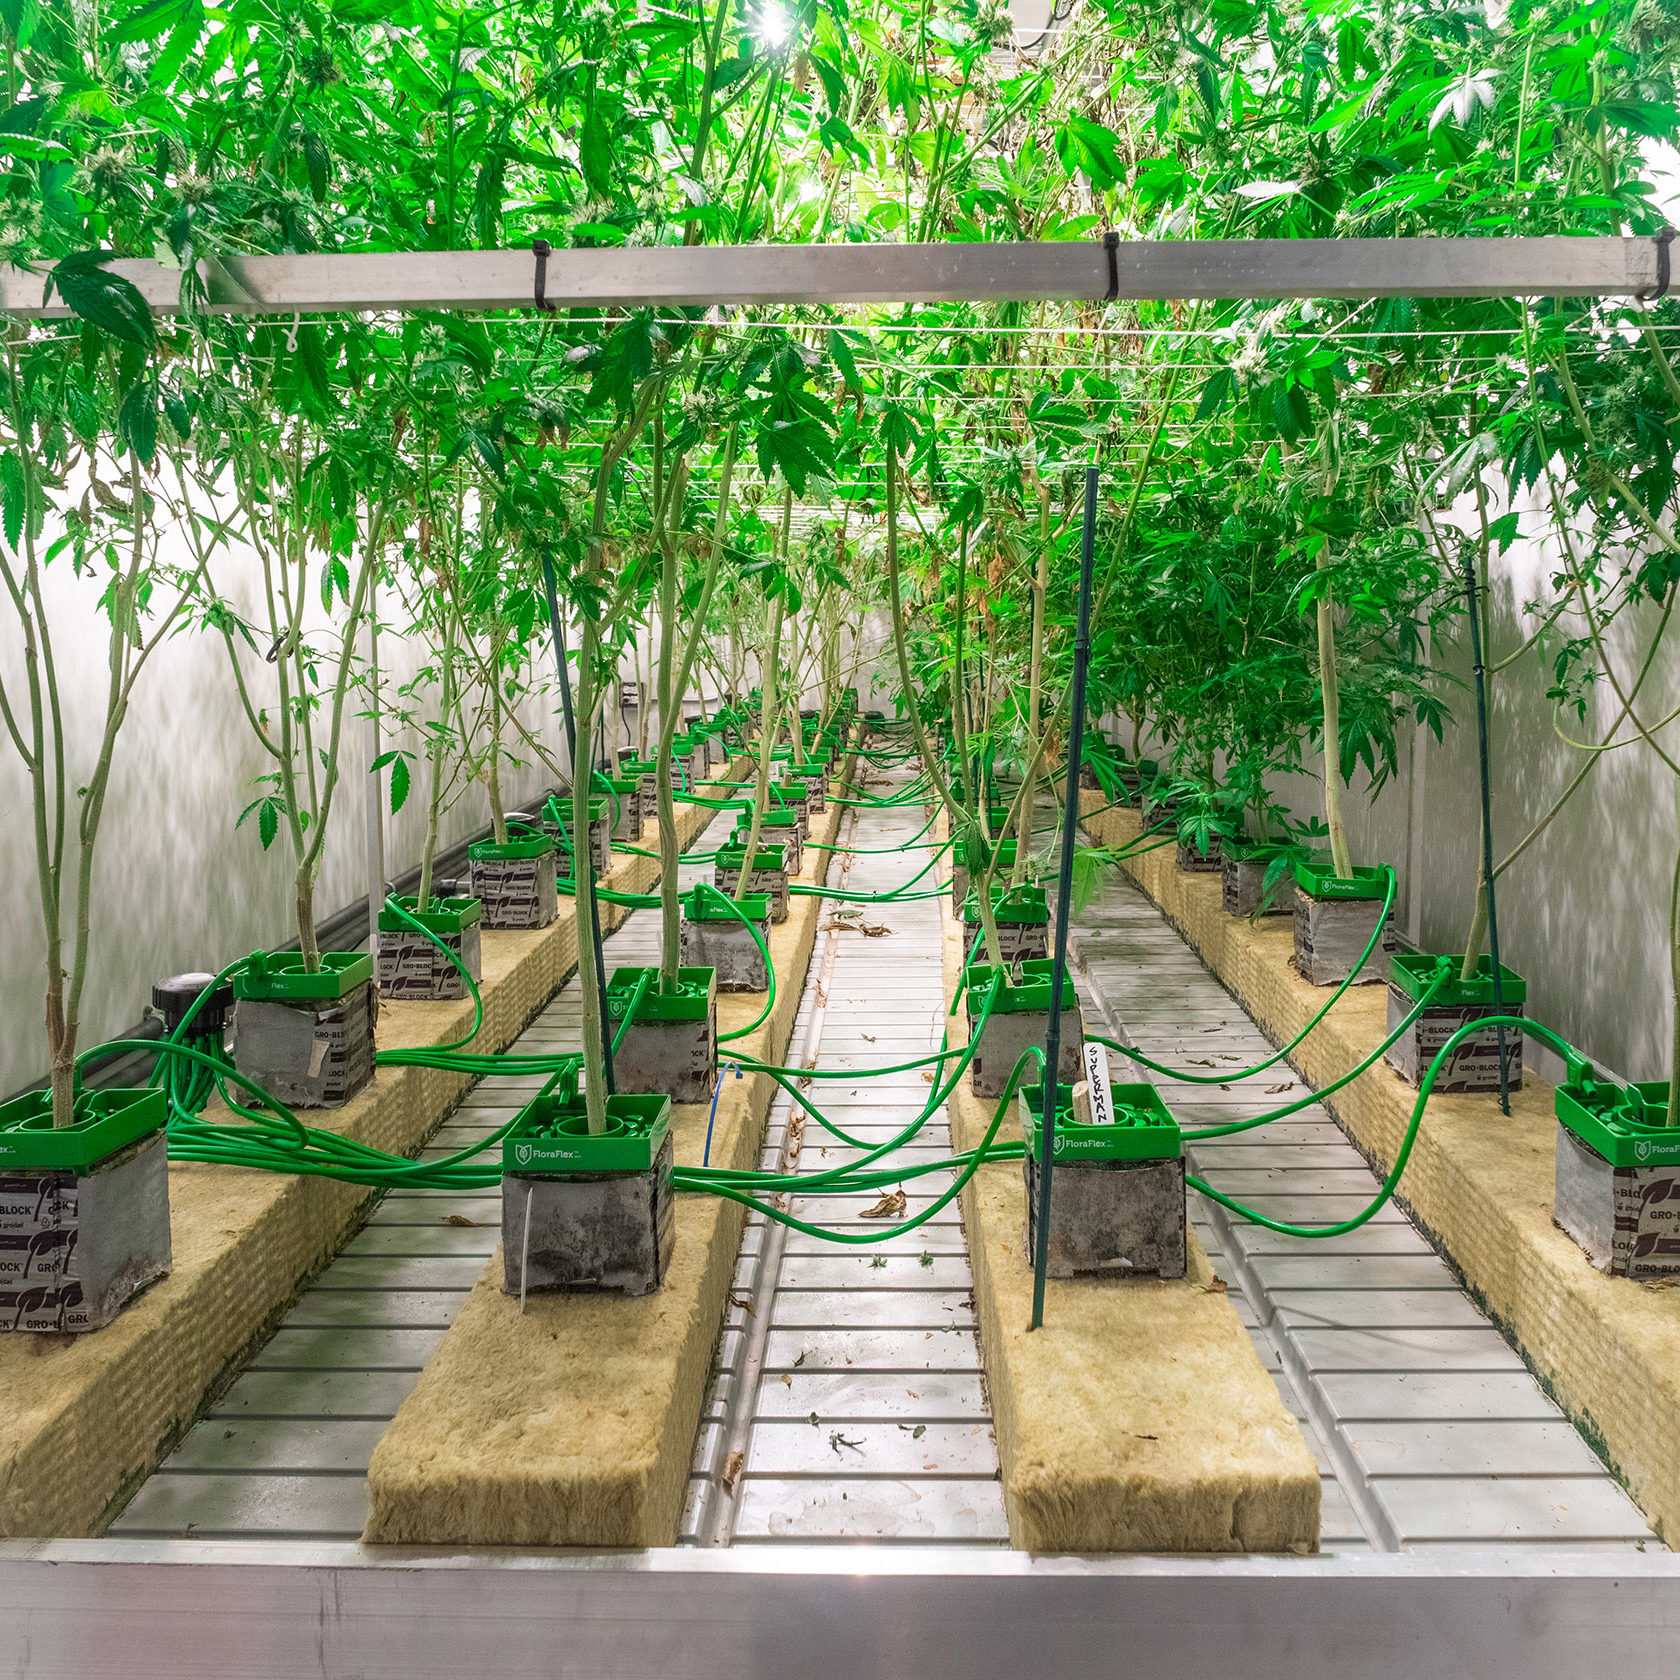 Cannabis Production in Shipping Container Farms